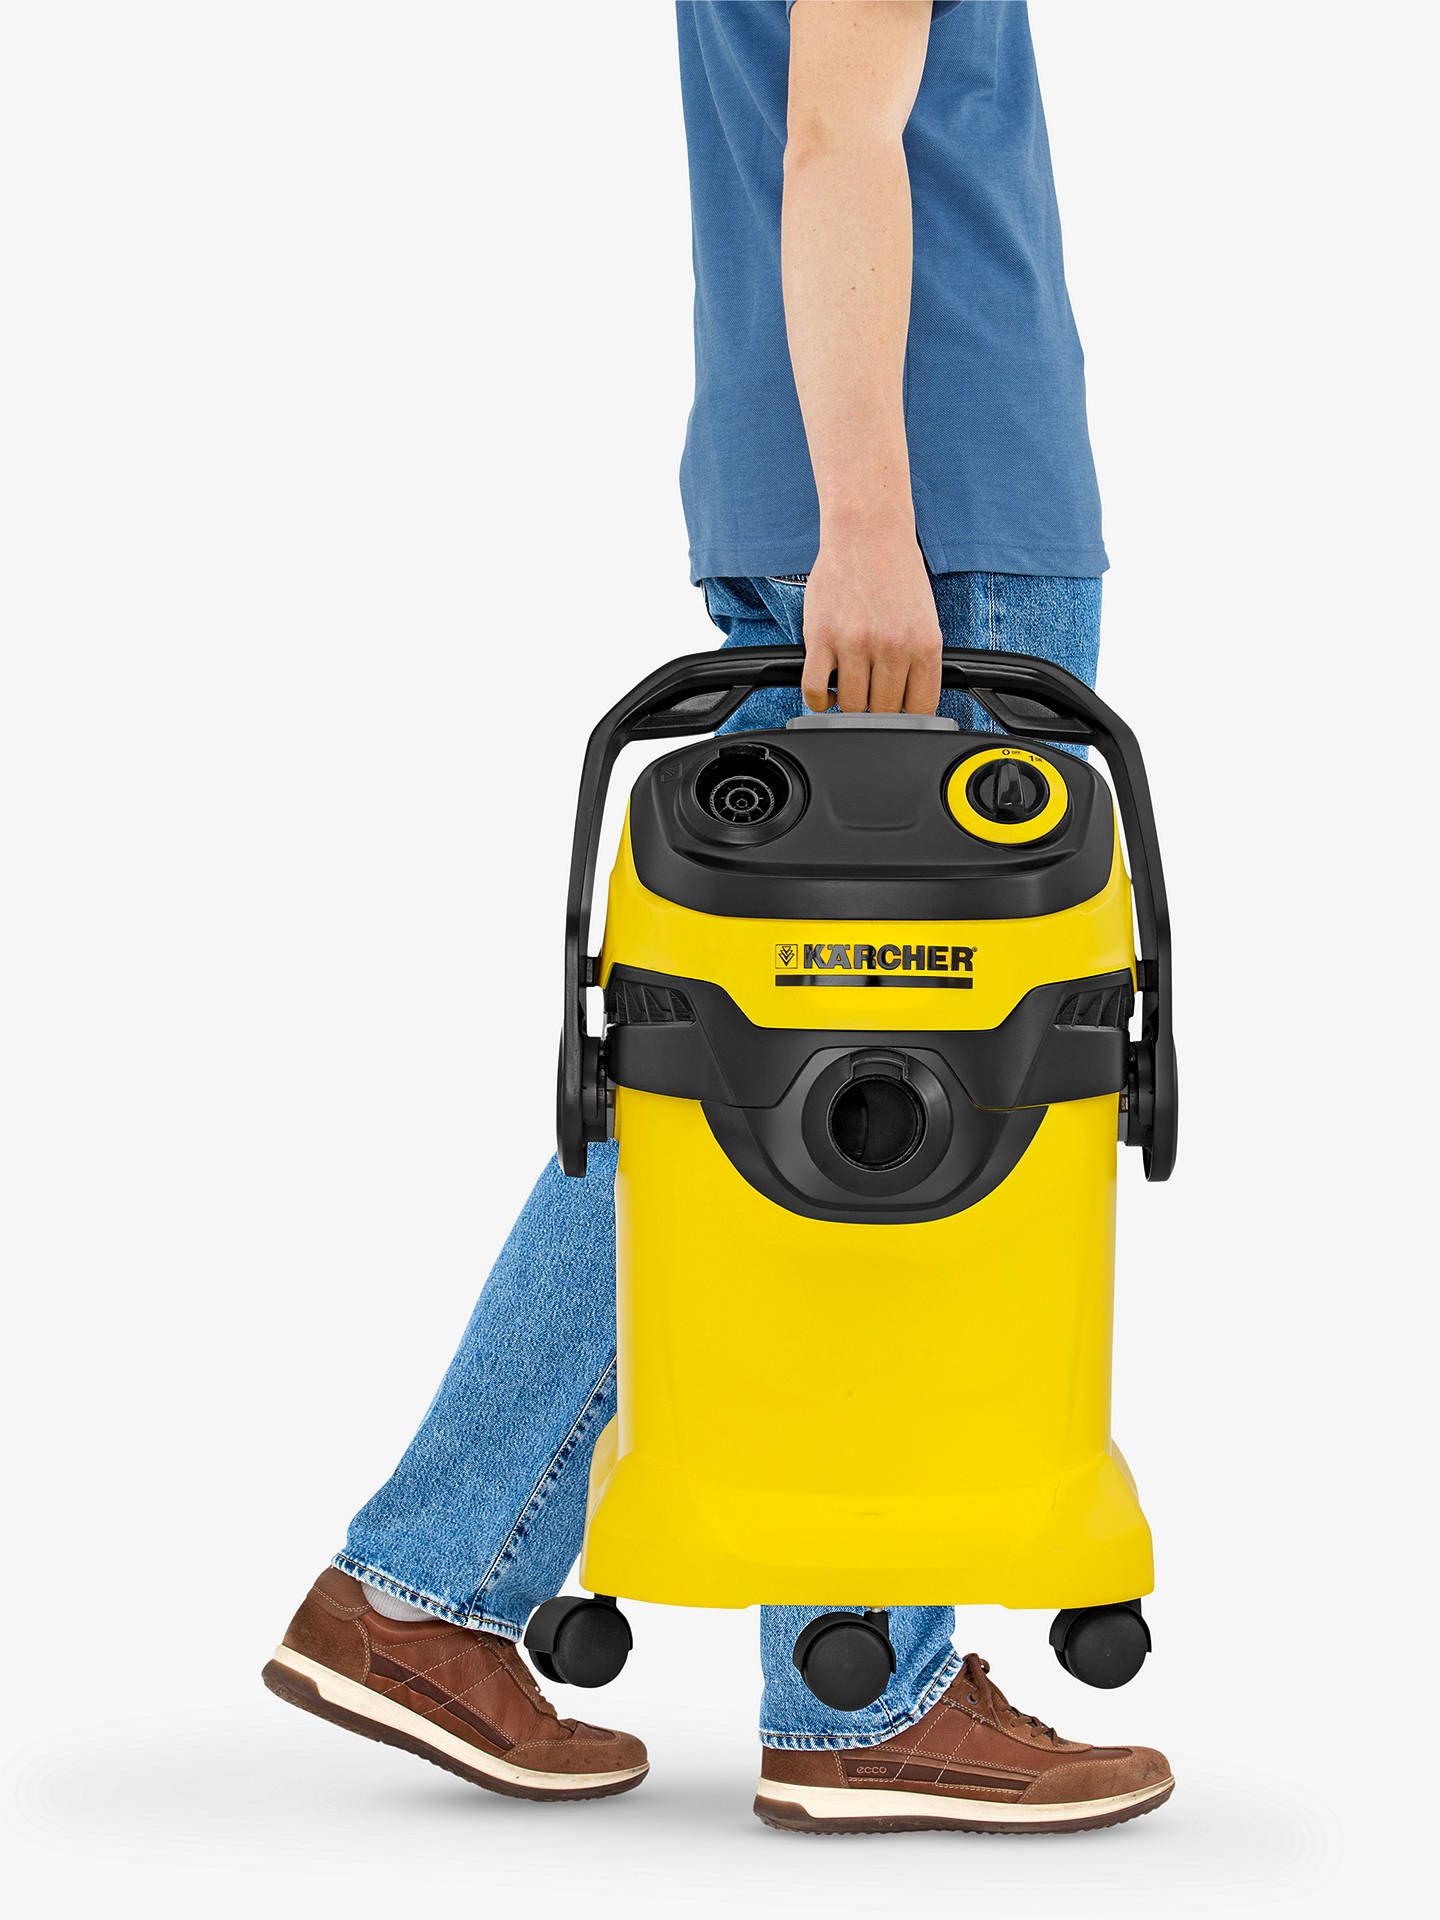 Karcher WD 5 Wet and Dry Vacuum Cleaner